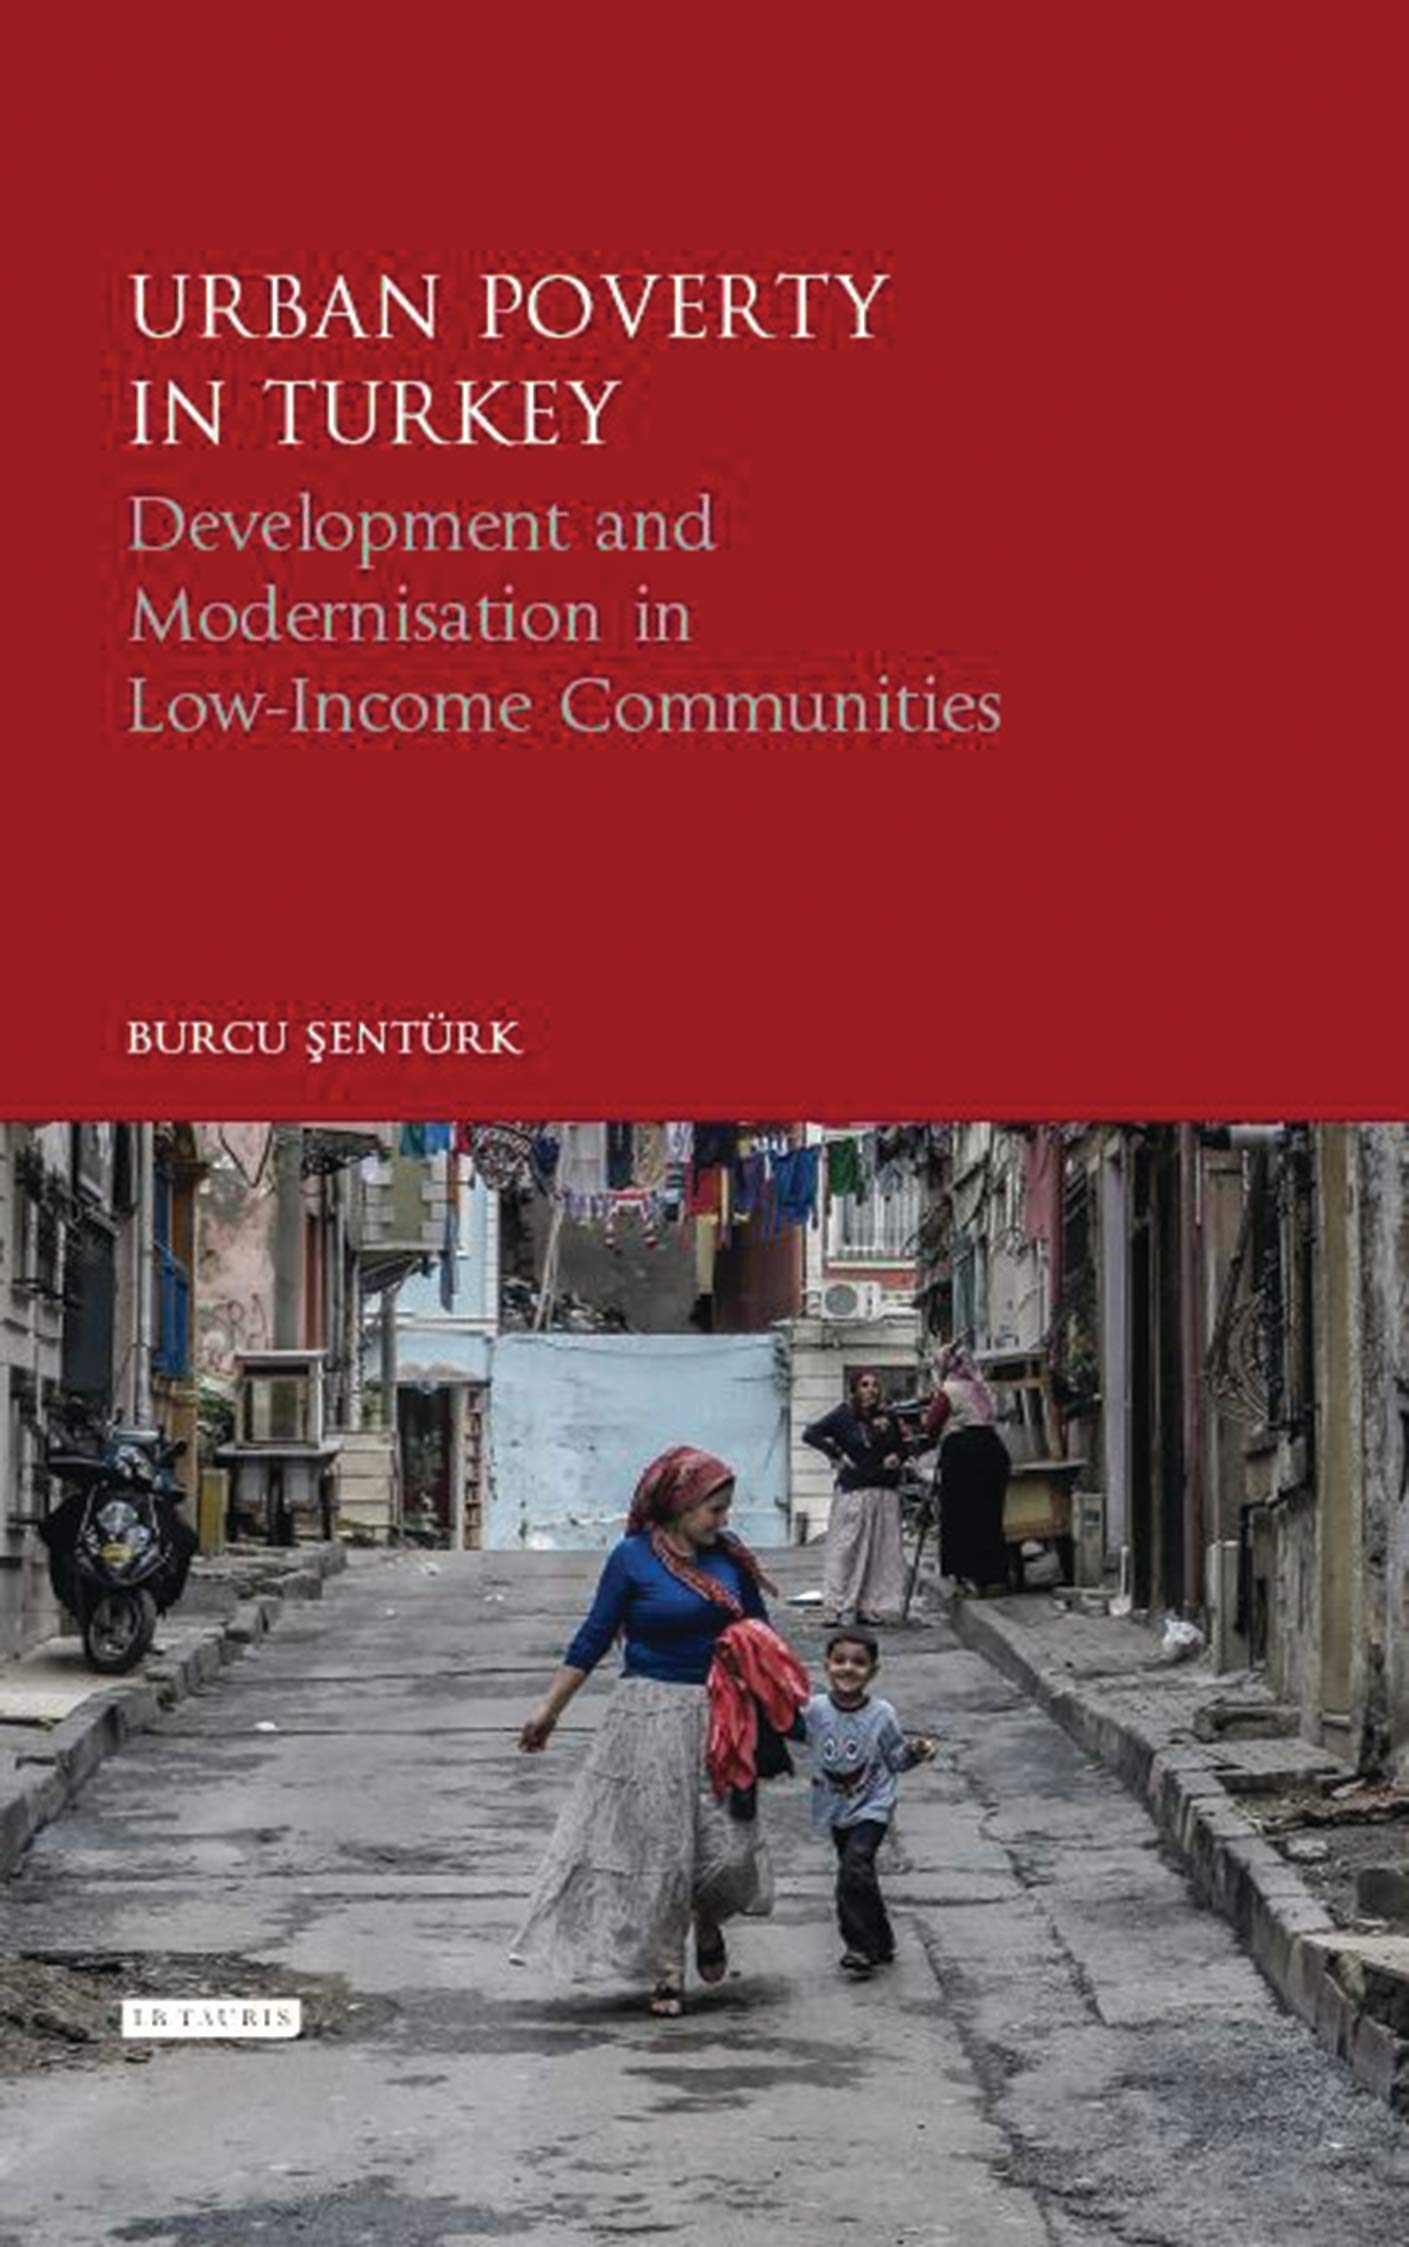 Urban Poverty in Turkey: Development and Modernisation in Low-Income Communities (Library of Modern Turkey)